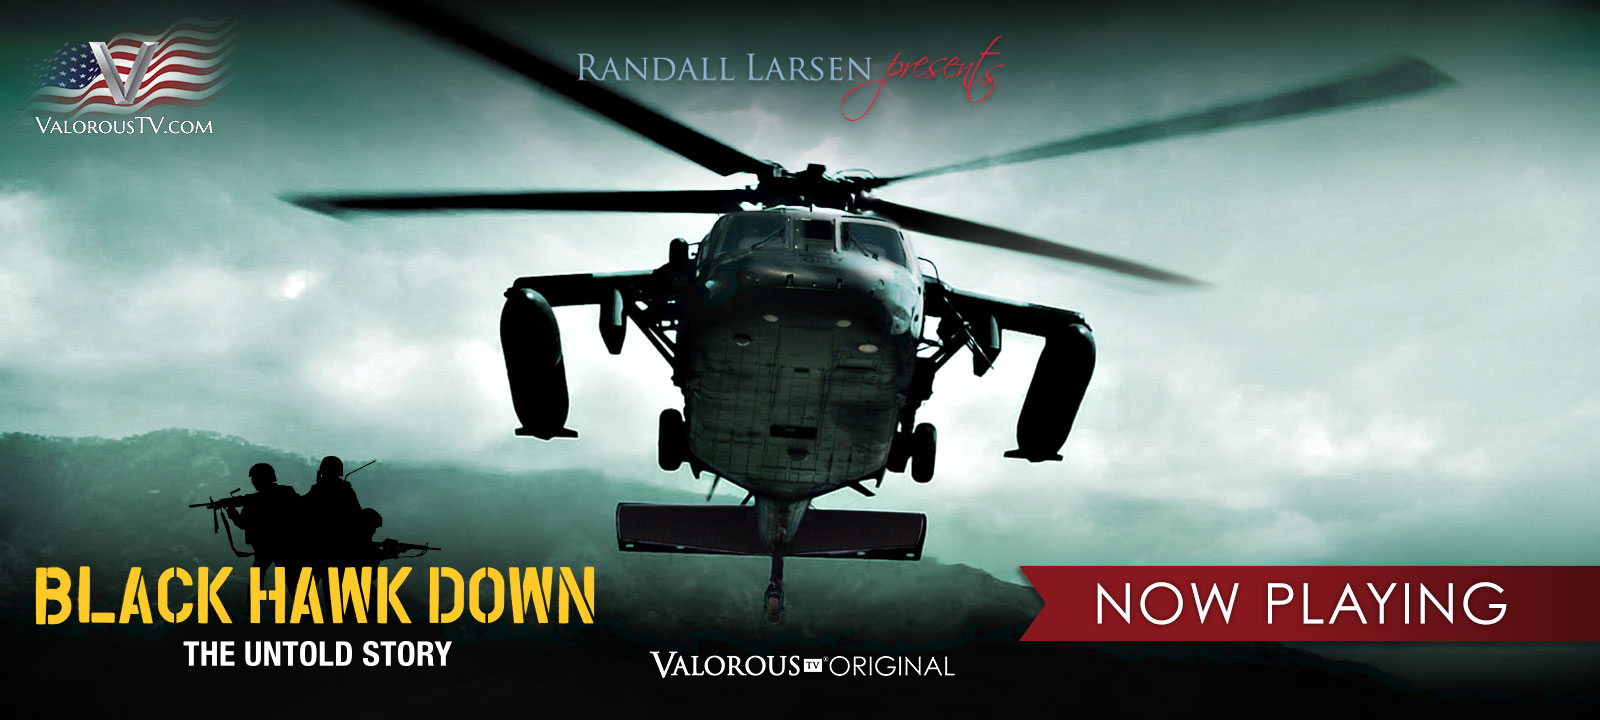 Black Hawk Down The Untold Story